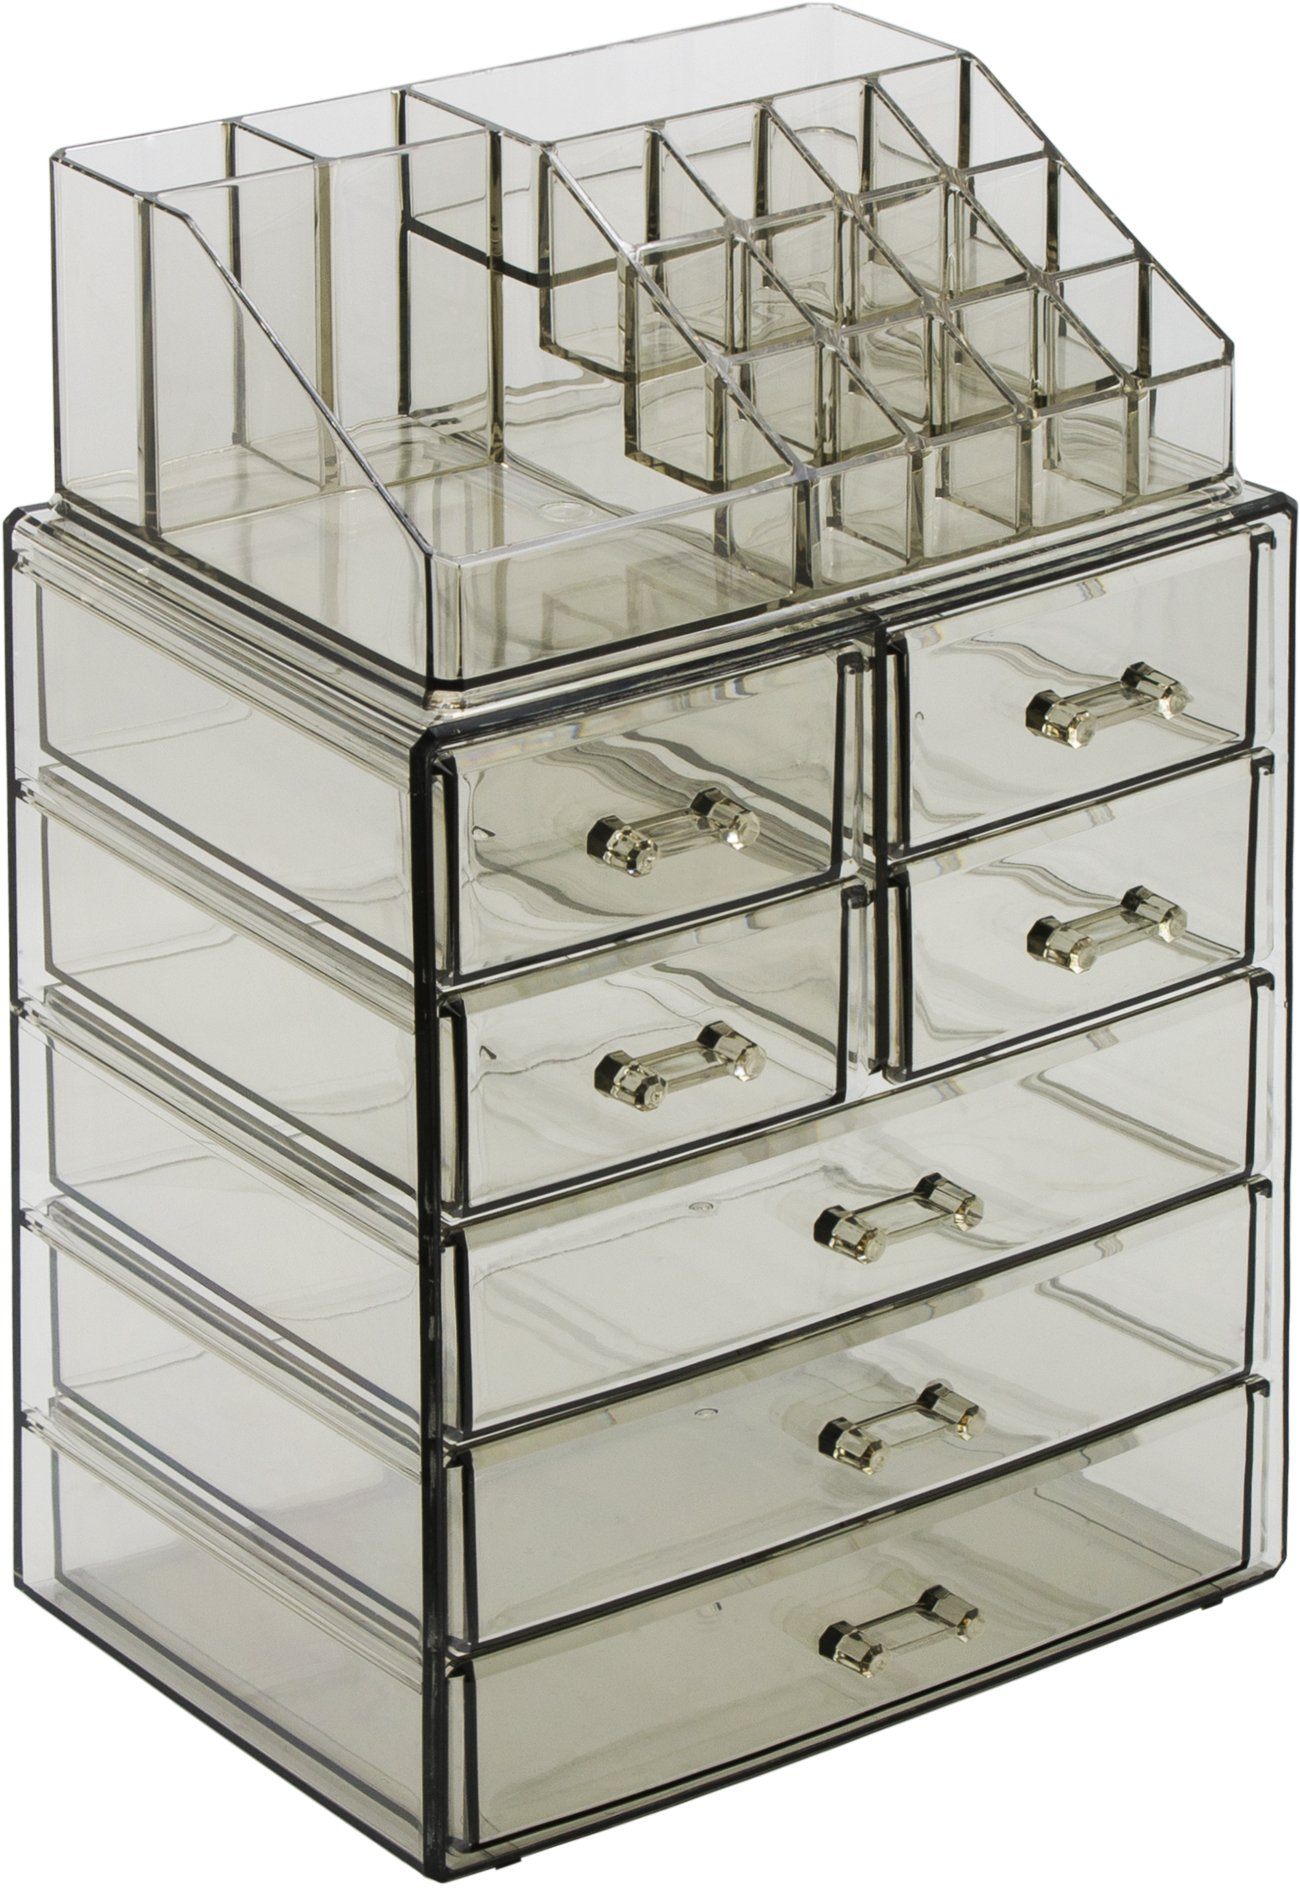 Sorbus Acrylic Cosmetic Makeup and Jewelry Storage Case Display - Spacious Design - Great for Bathroom, Dresser, Vanity and Countertop (3 Large, 4 Small Drawers, Black Jewel)